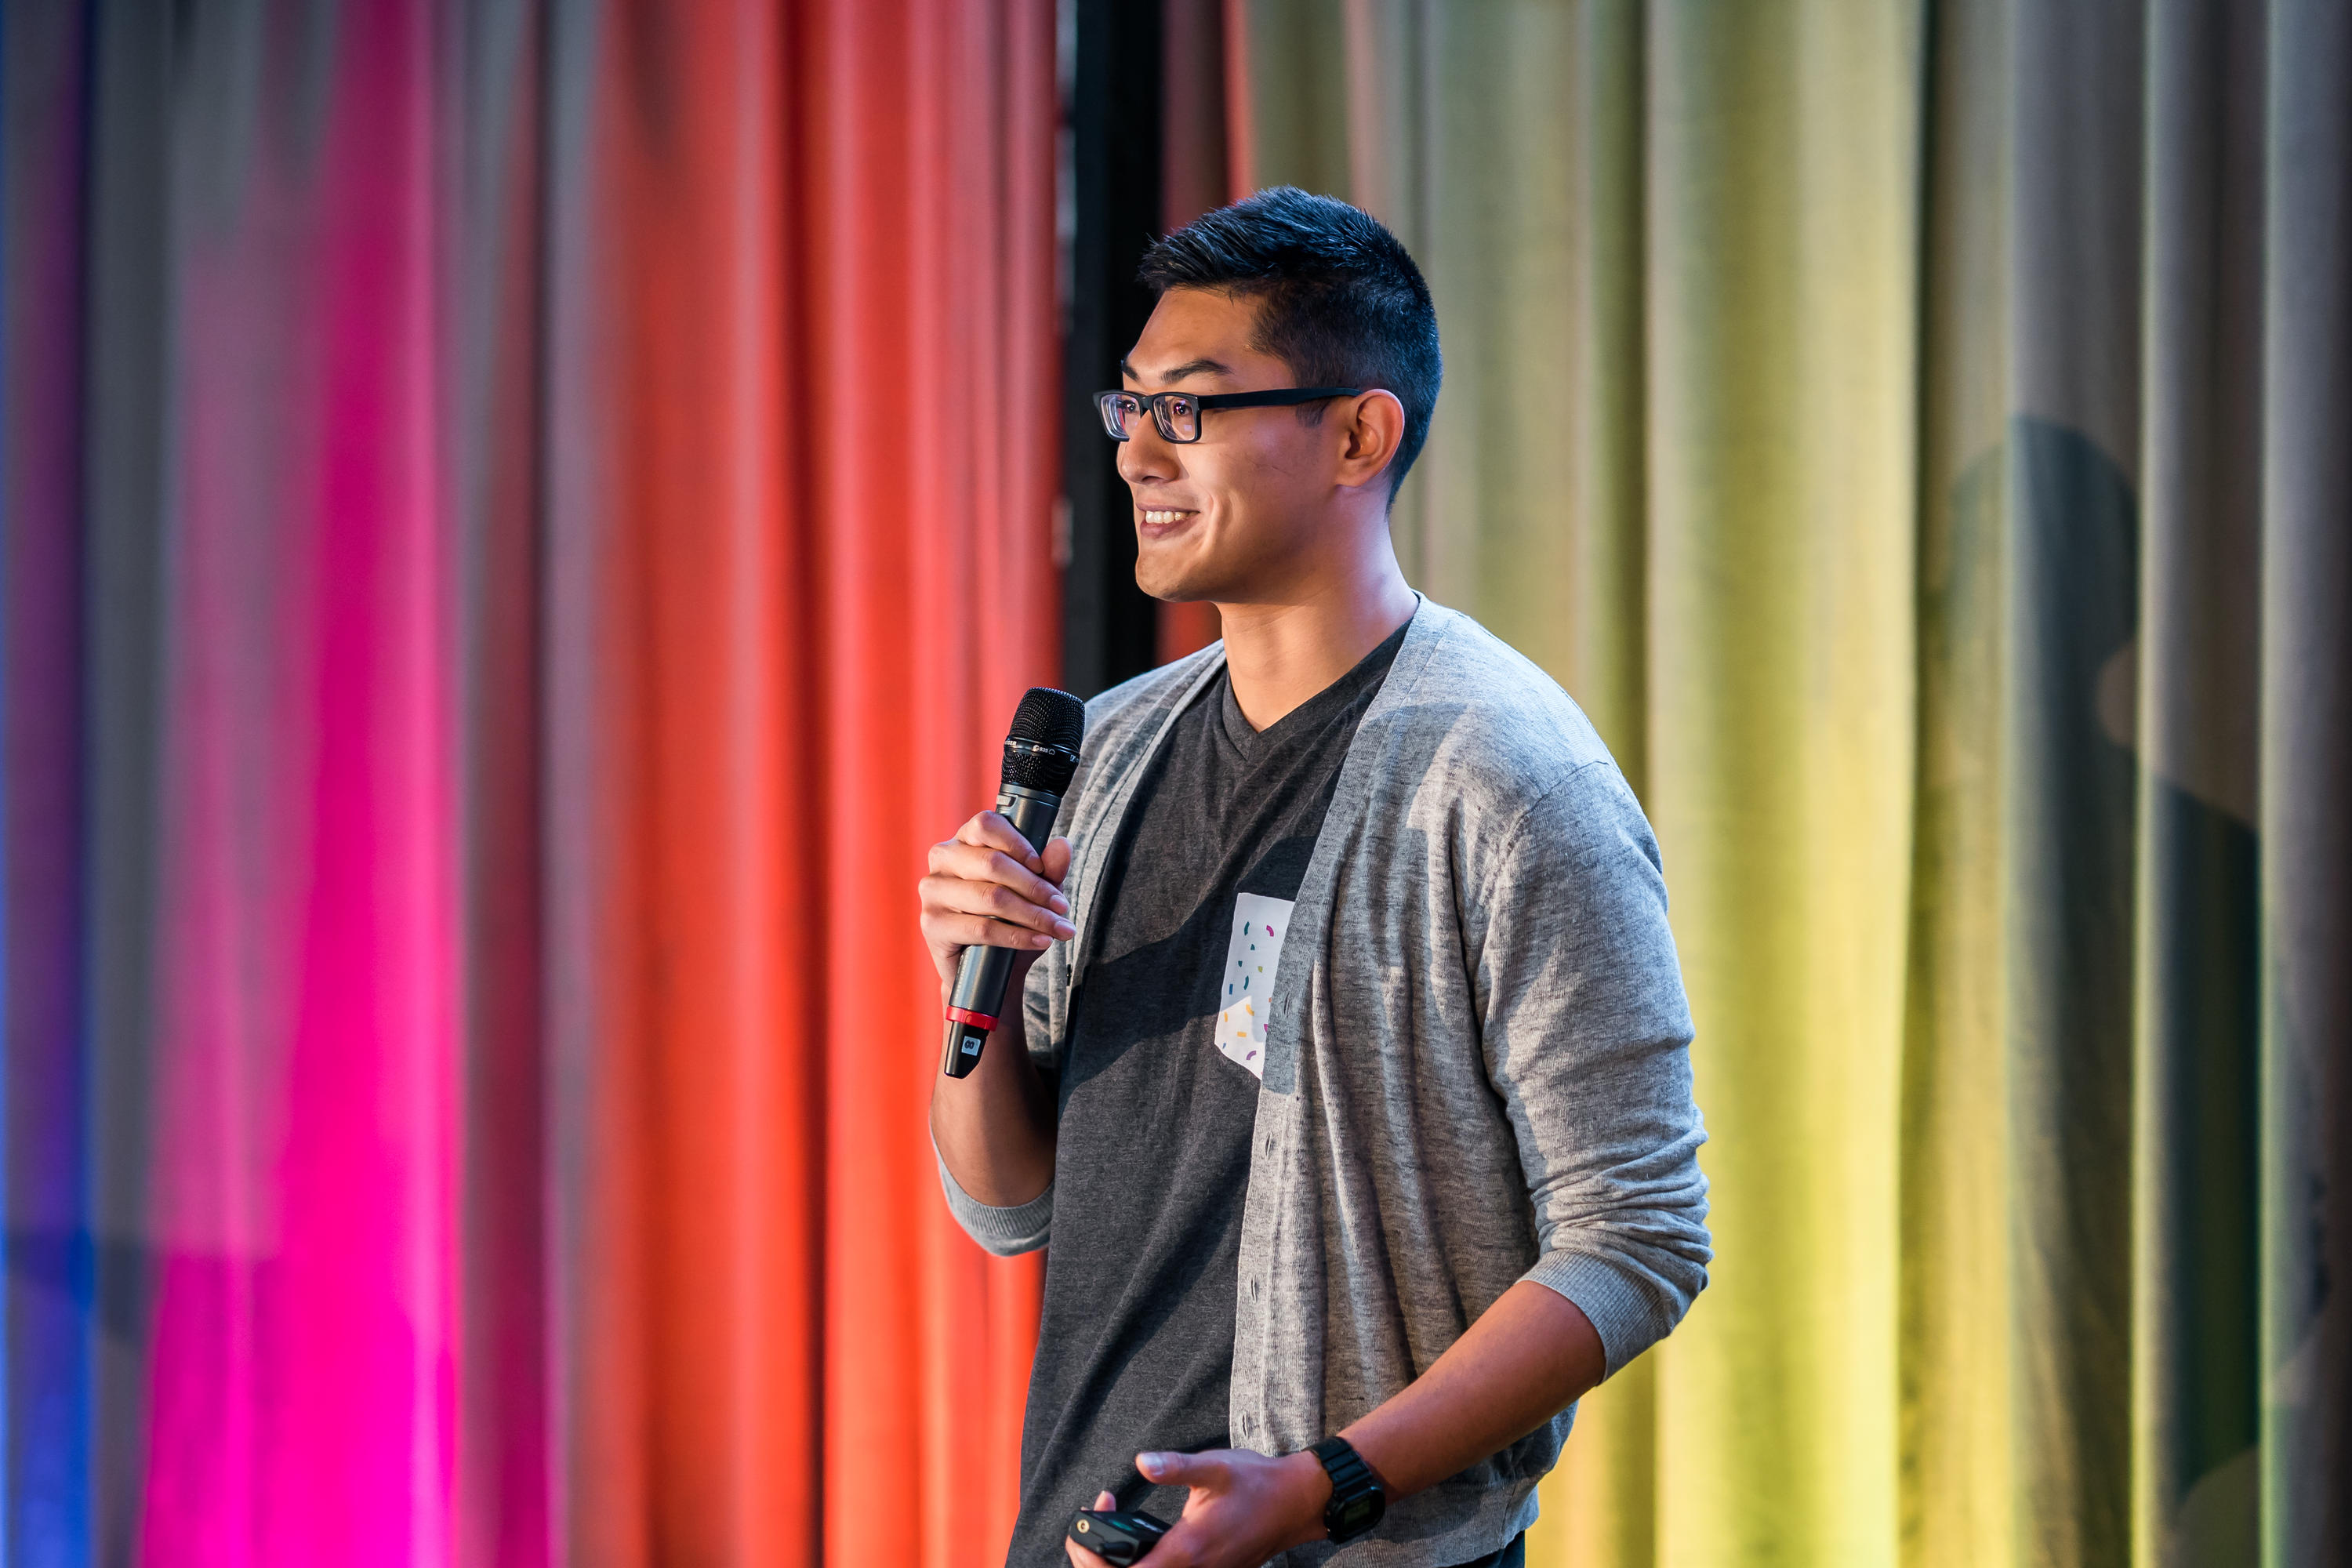 Flowy co-founder David Zhao presents at the Concept $5K final